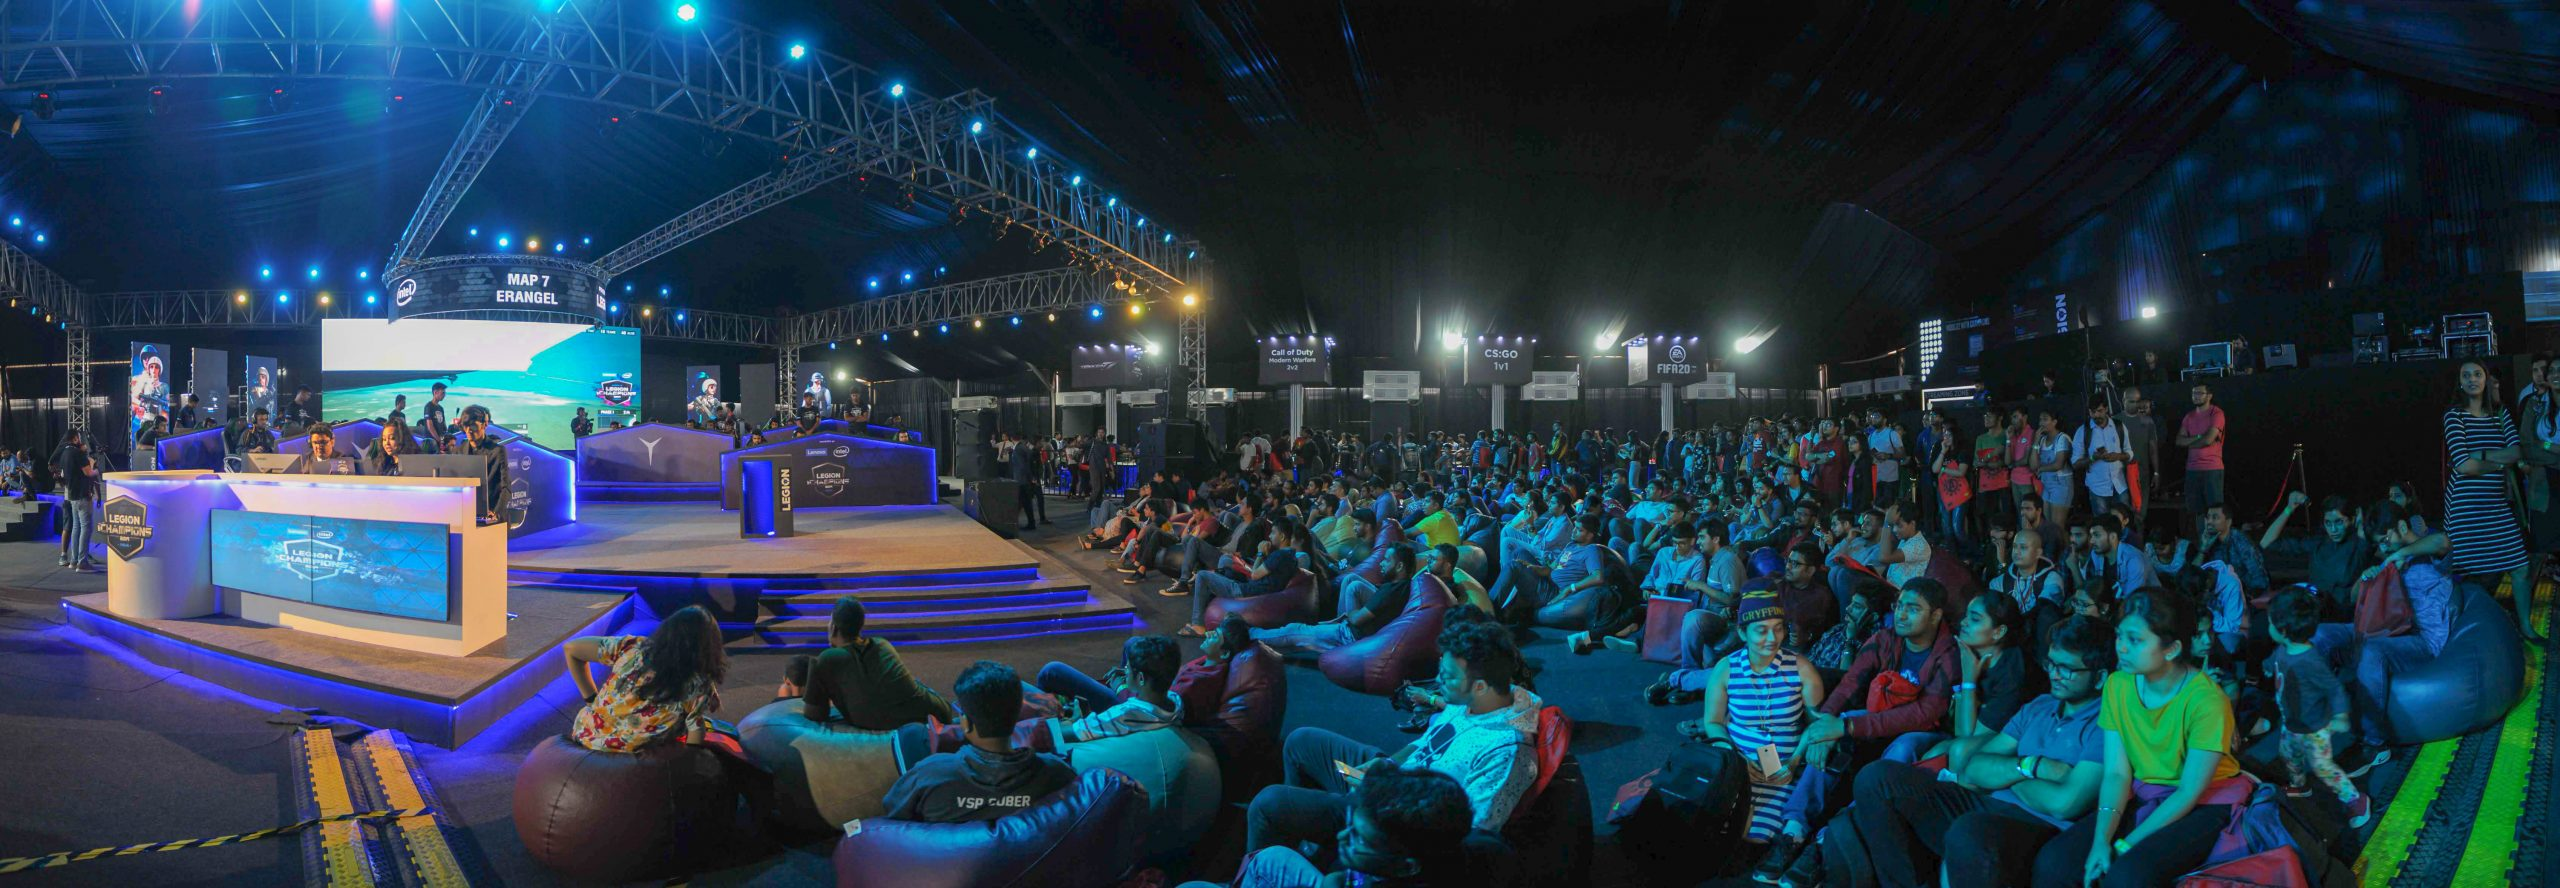 The Esports Club,has remained active in partnering with companies to serve the gaming and esports industries in India.